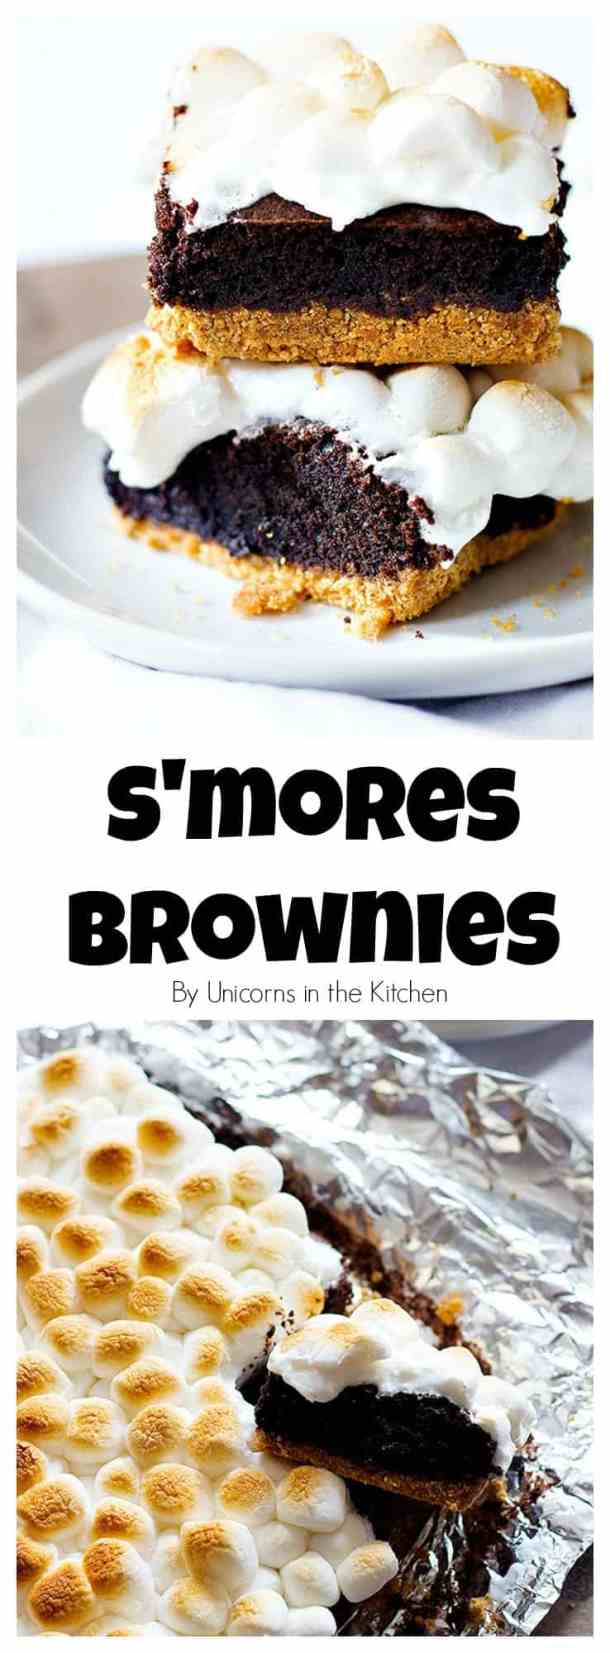 s'mores brownies | Marshmallow brownies | s'mores brownies recipe | Brownies with marshmallows | s'mores brownies easy | Unicornsinthekitchen.com #brownies #smoresbrownies #browniesrecipe #grahamcrackers #chocolate #smores #dessert #chocolatebrownies